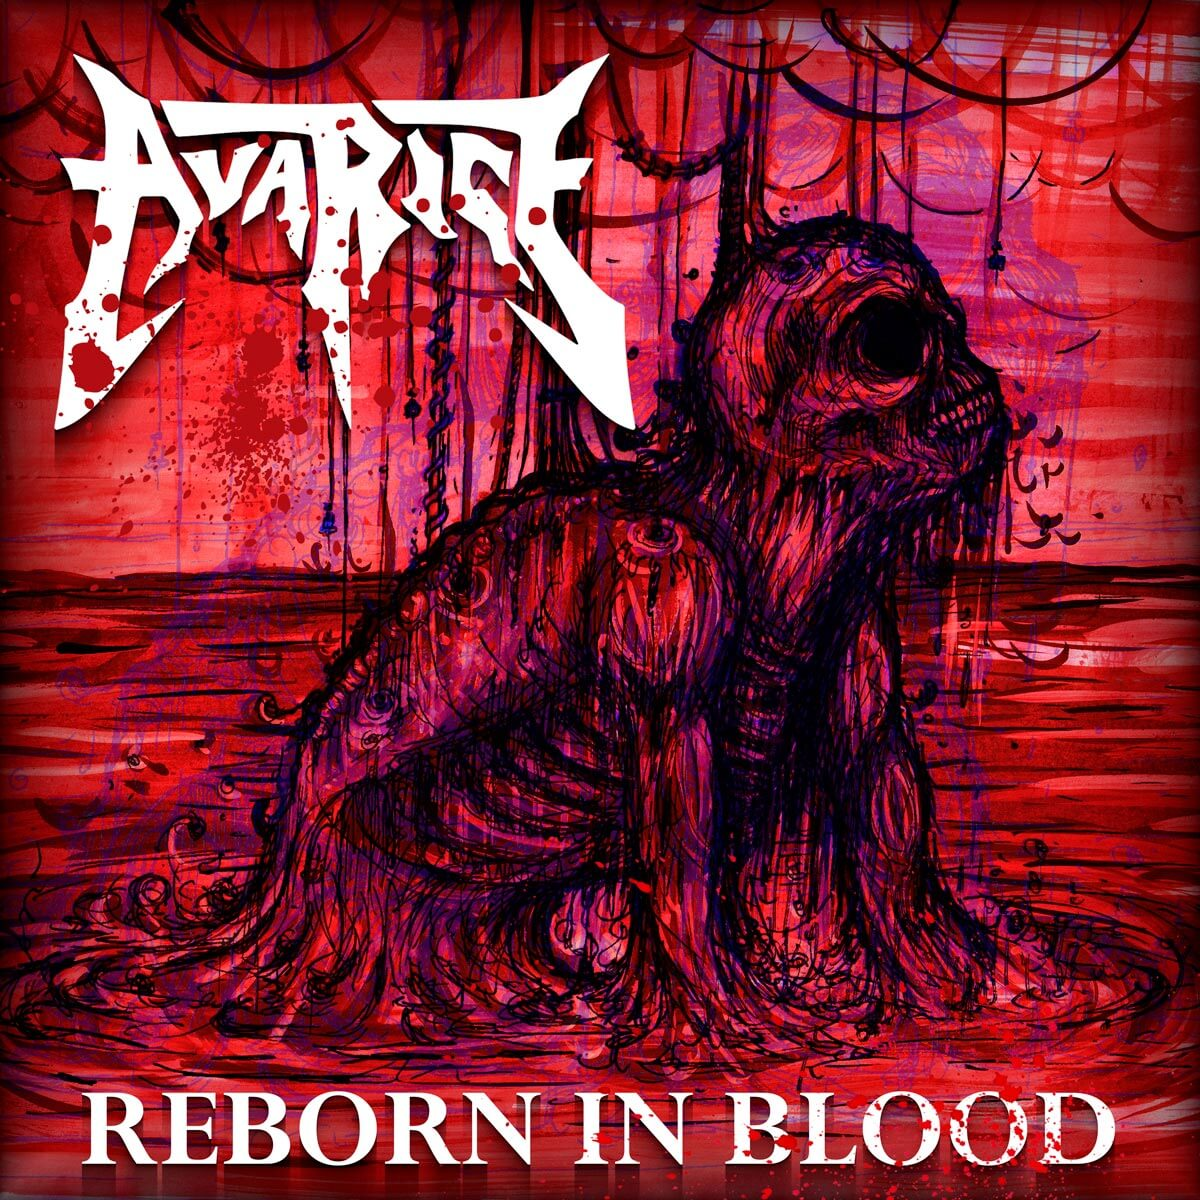 Avarice – Reborn in blood